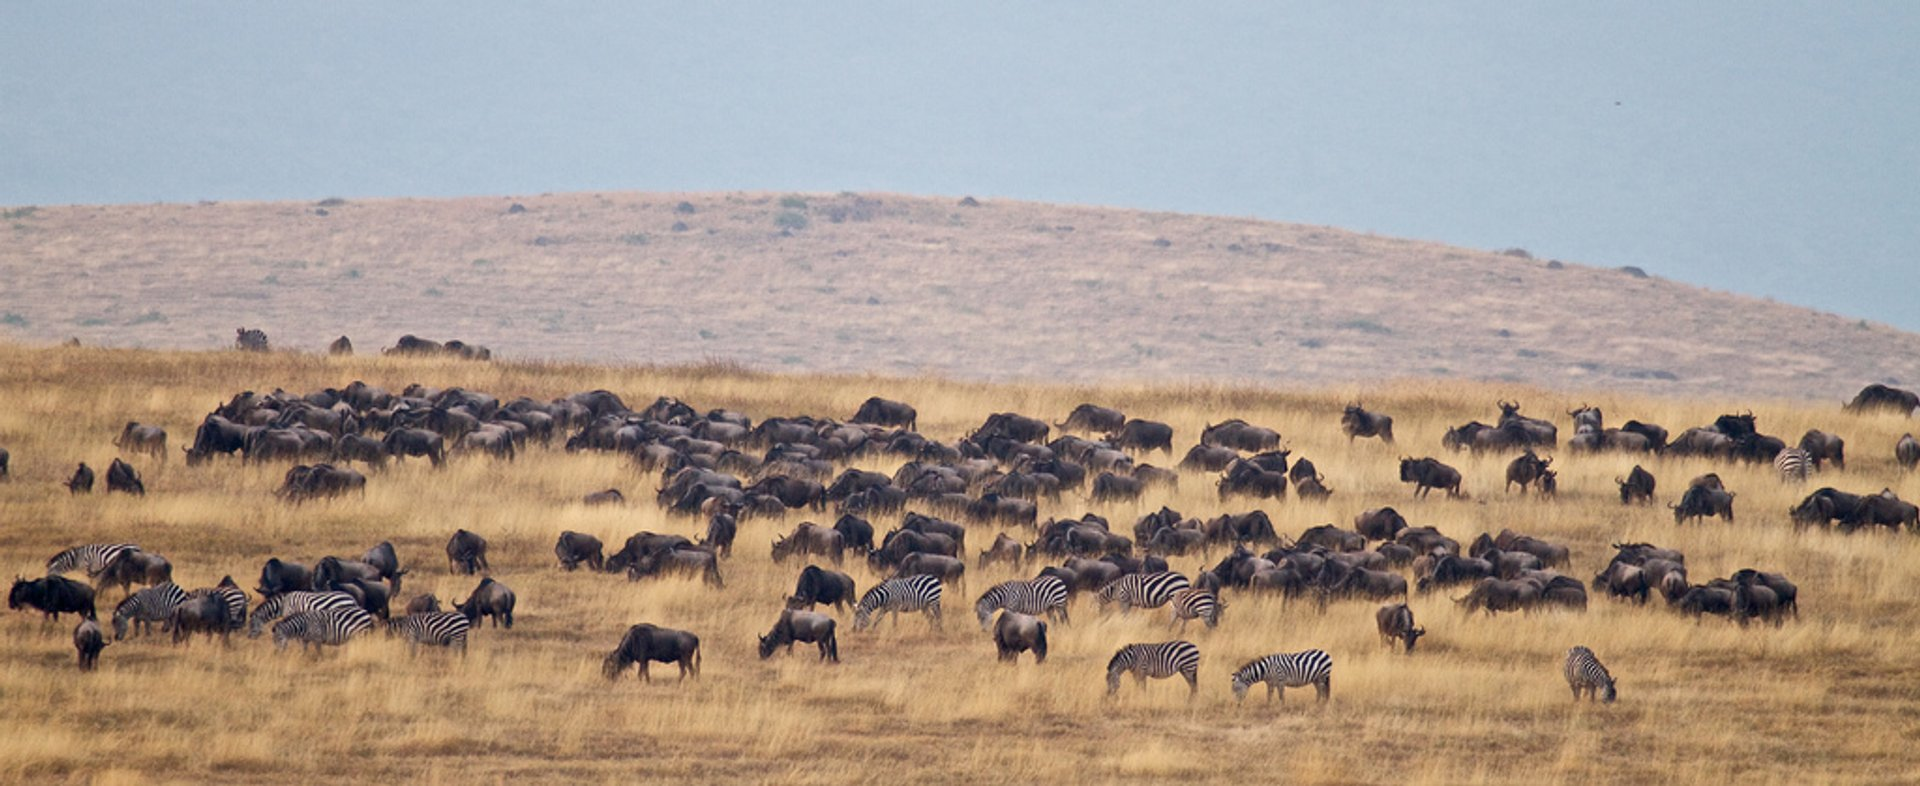 Best time for Ngorongoro Crater in Tanzania 2019